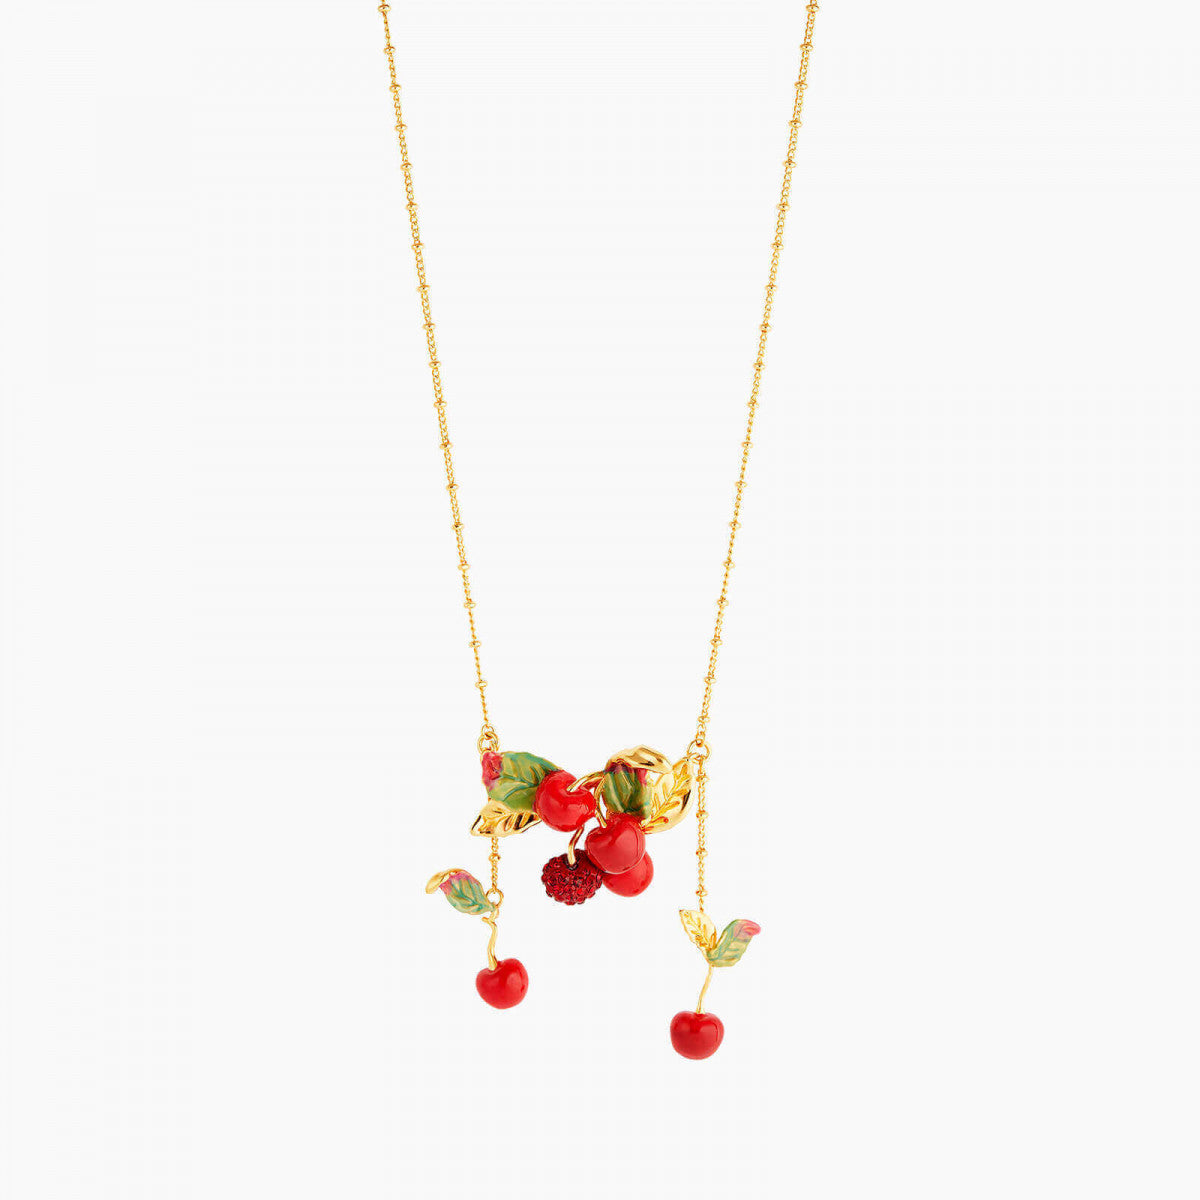 Cherry and Leave Statement Necklace